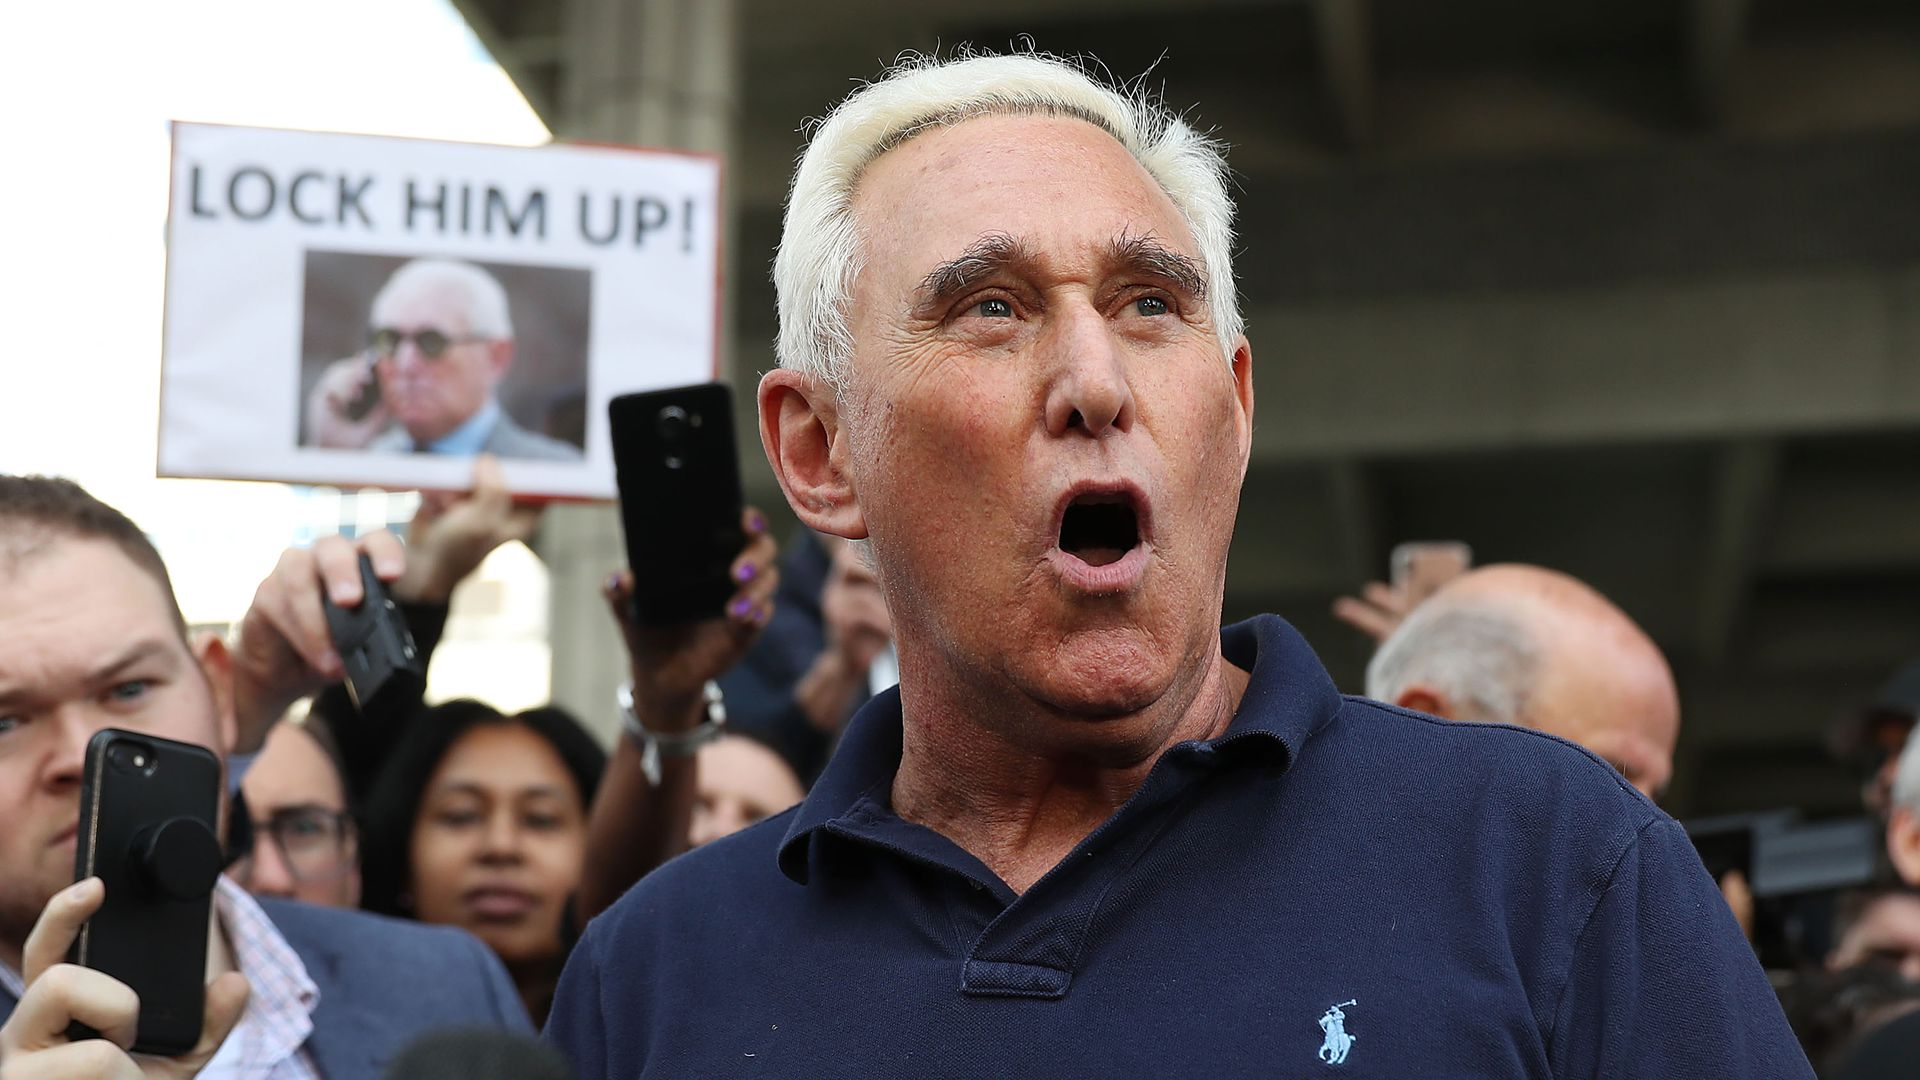 Roger Stone speaks to a crowd after his arrest